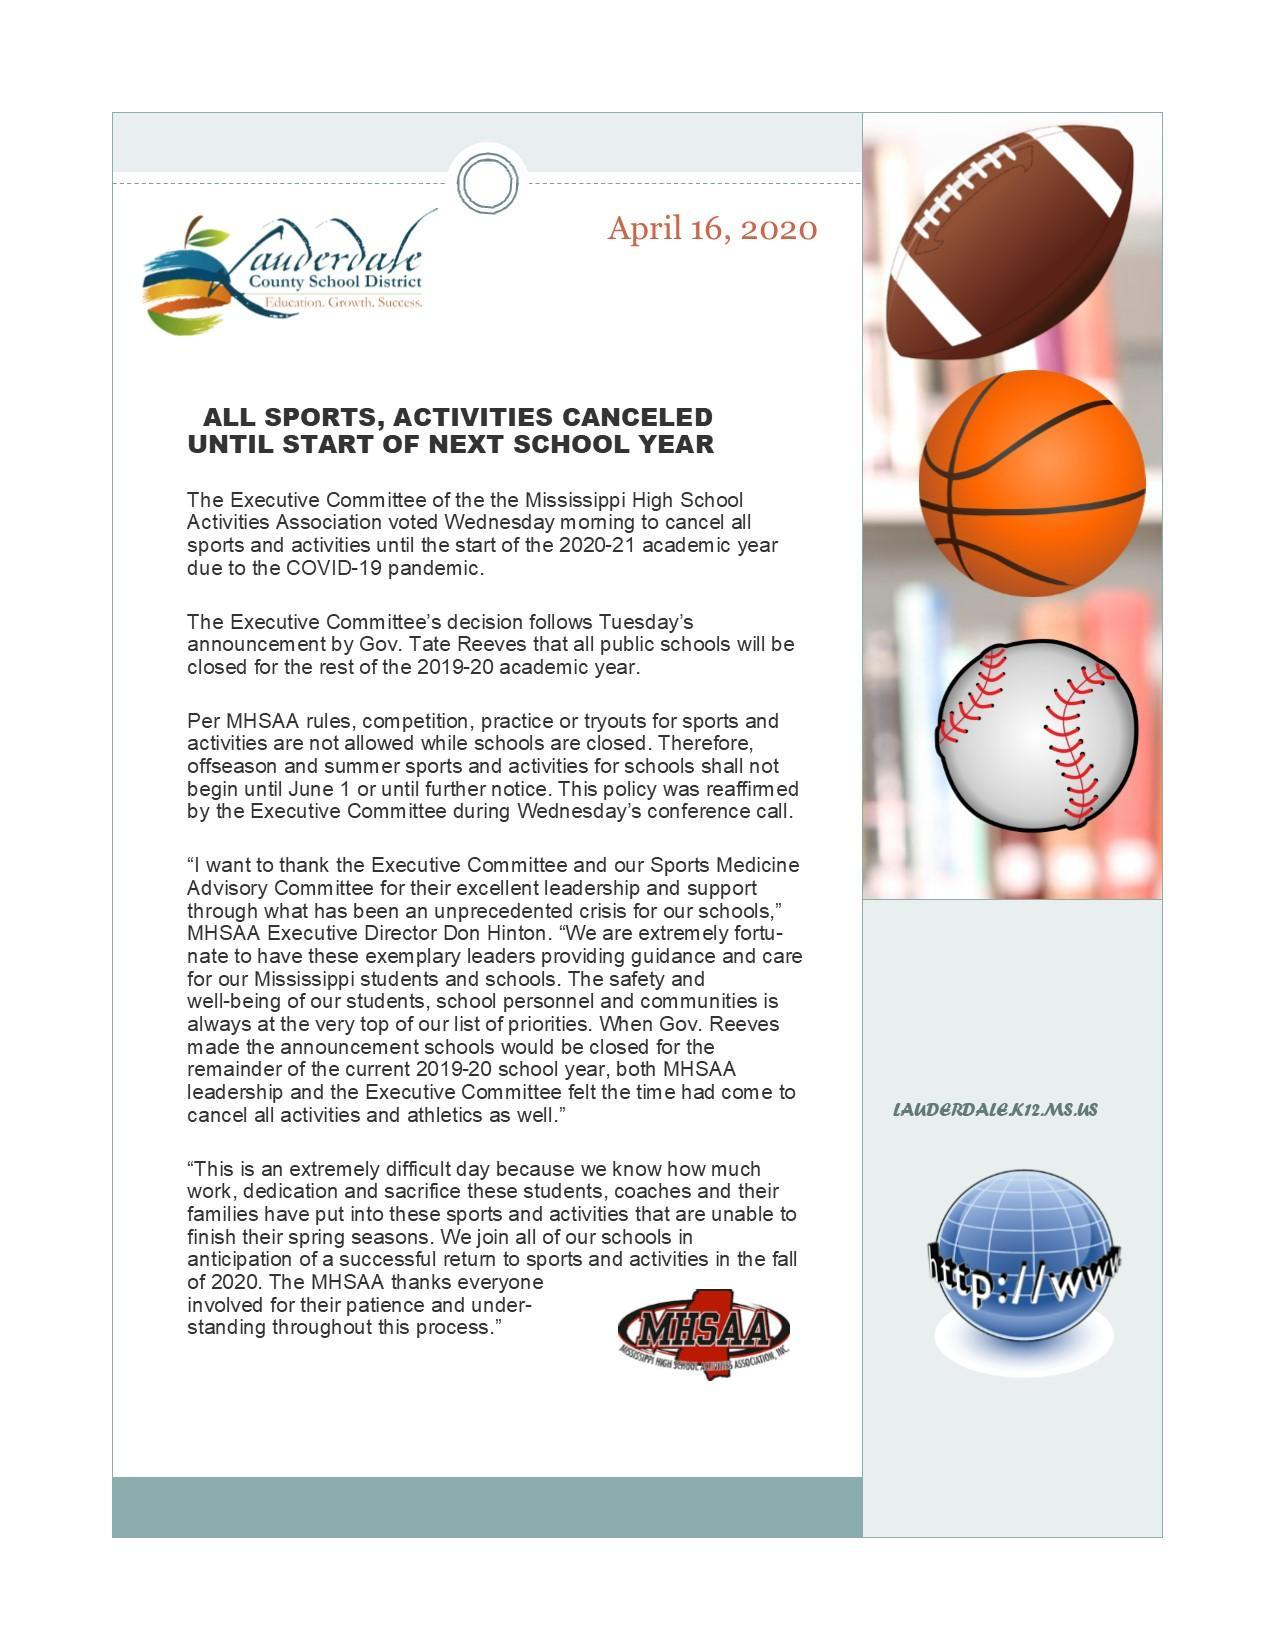 Mississippi High School Activities Association Press Release